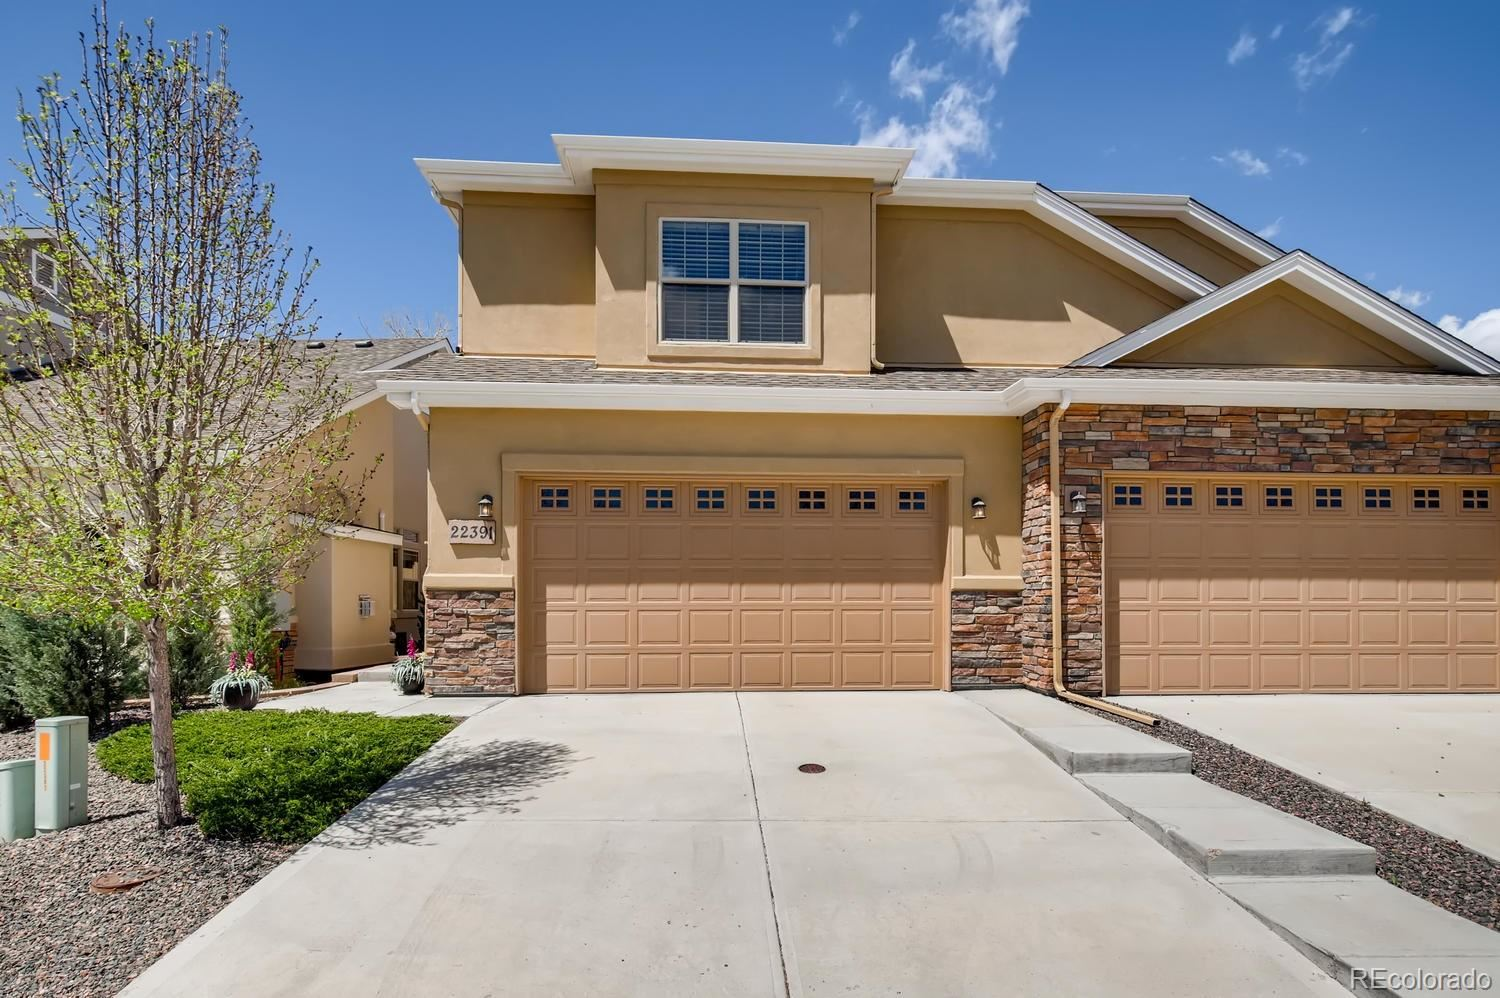 22391 E Plymouth Circle, Aurora, CO 80016 - #: 6708234